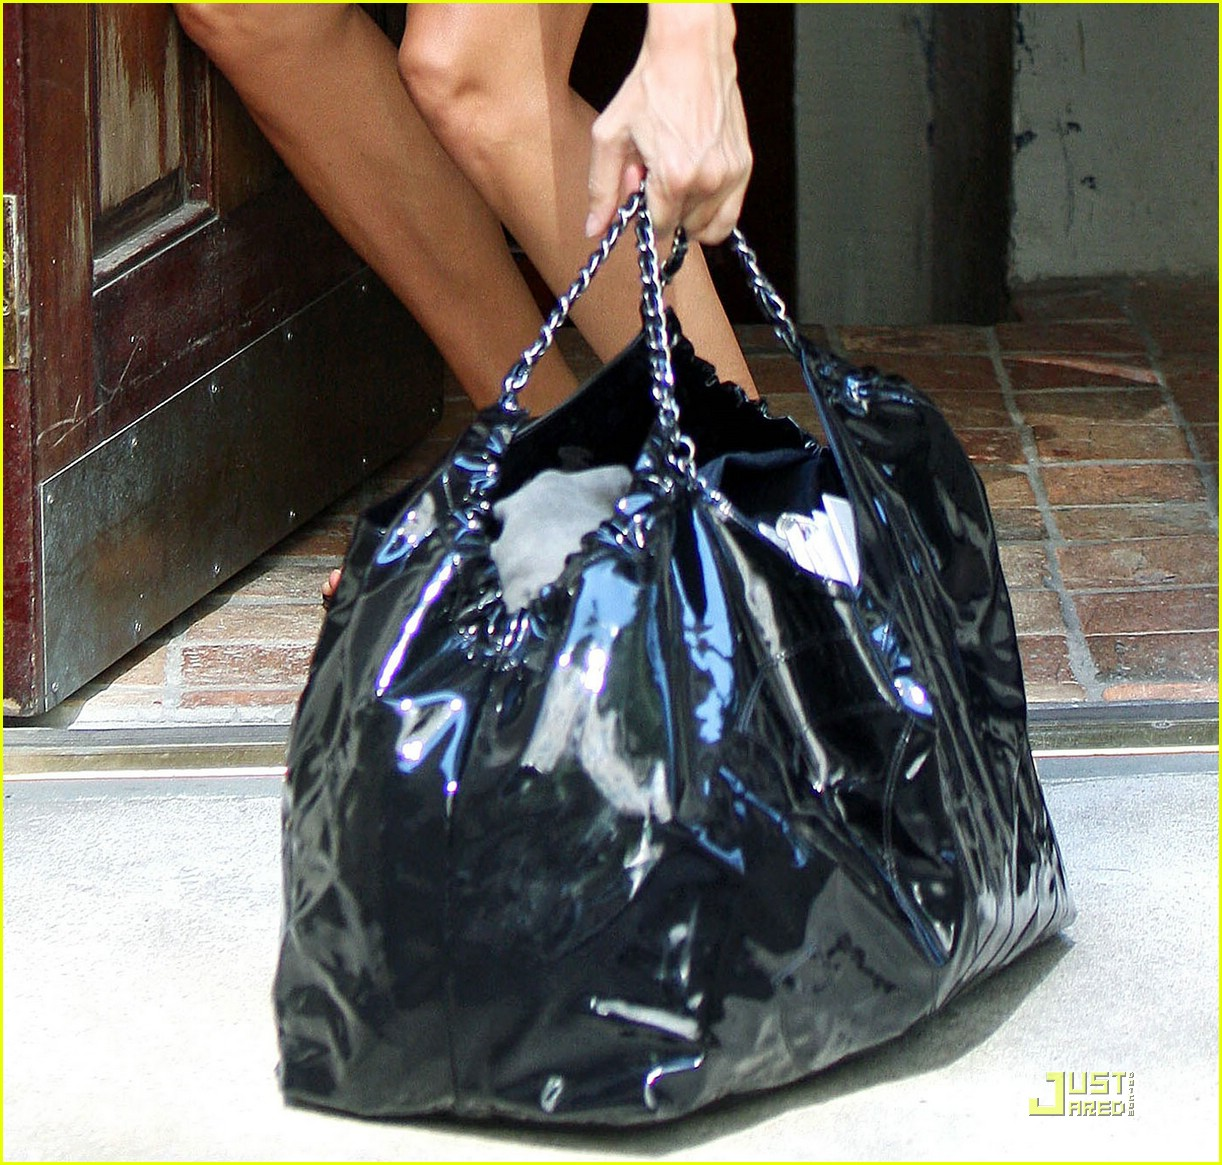 gisele bundchen bag lady 02